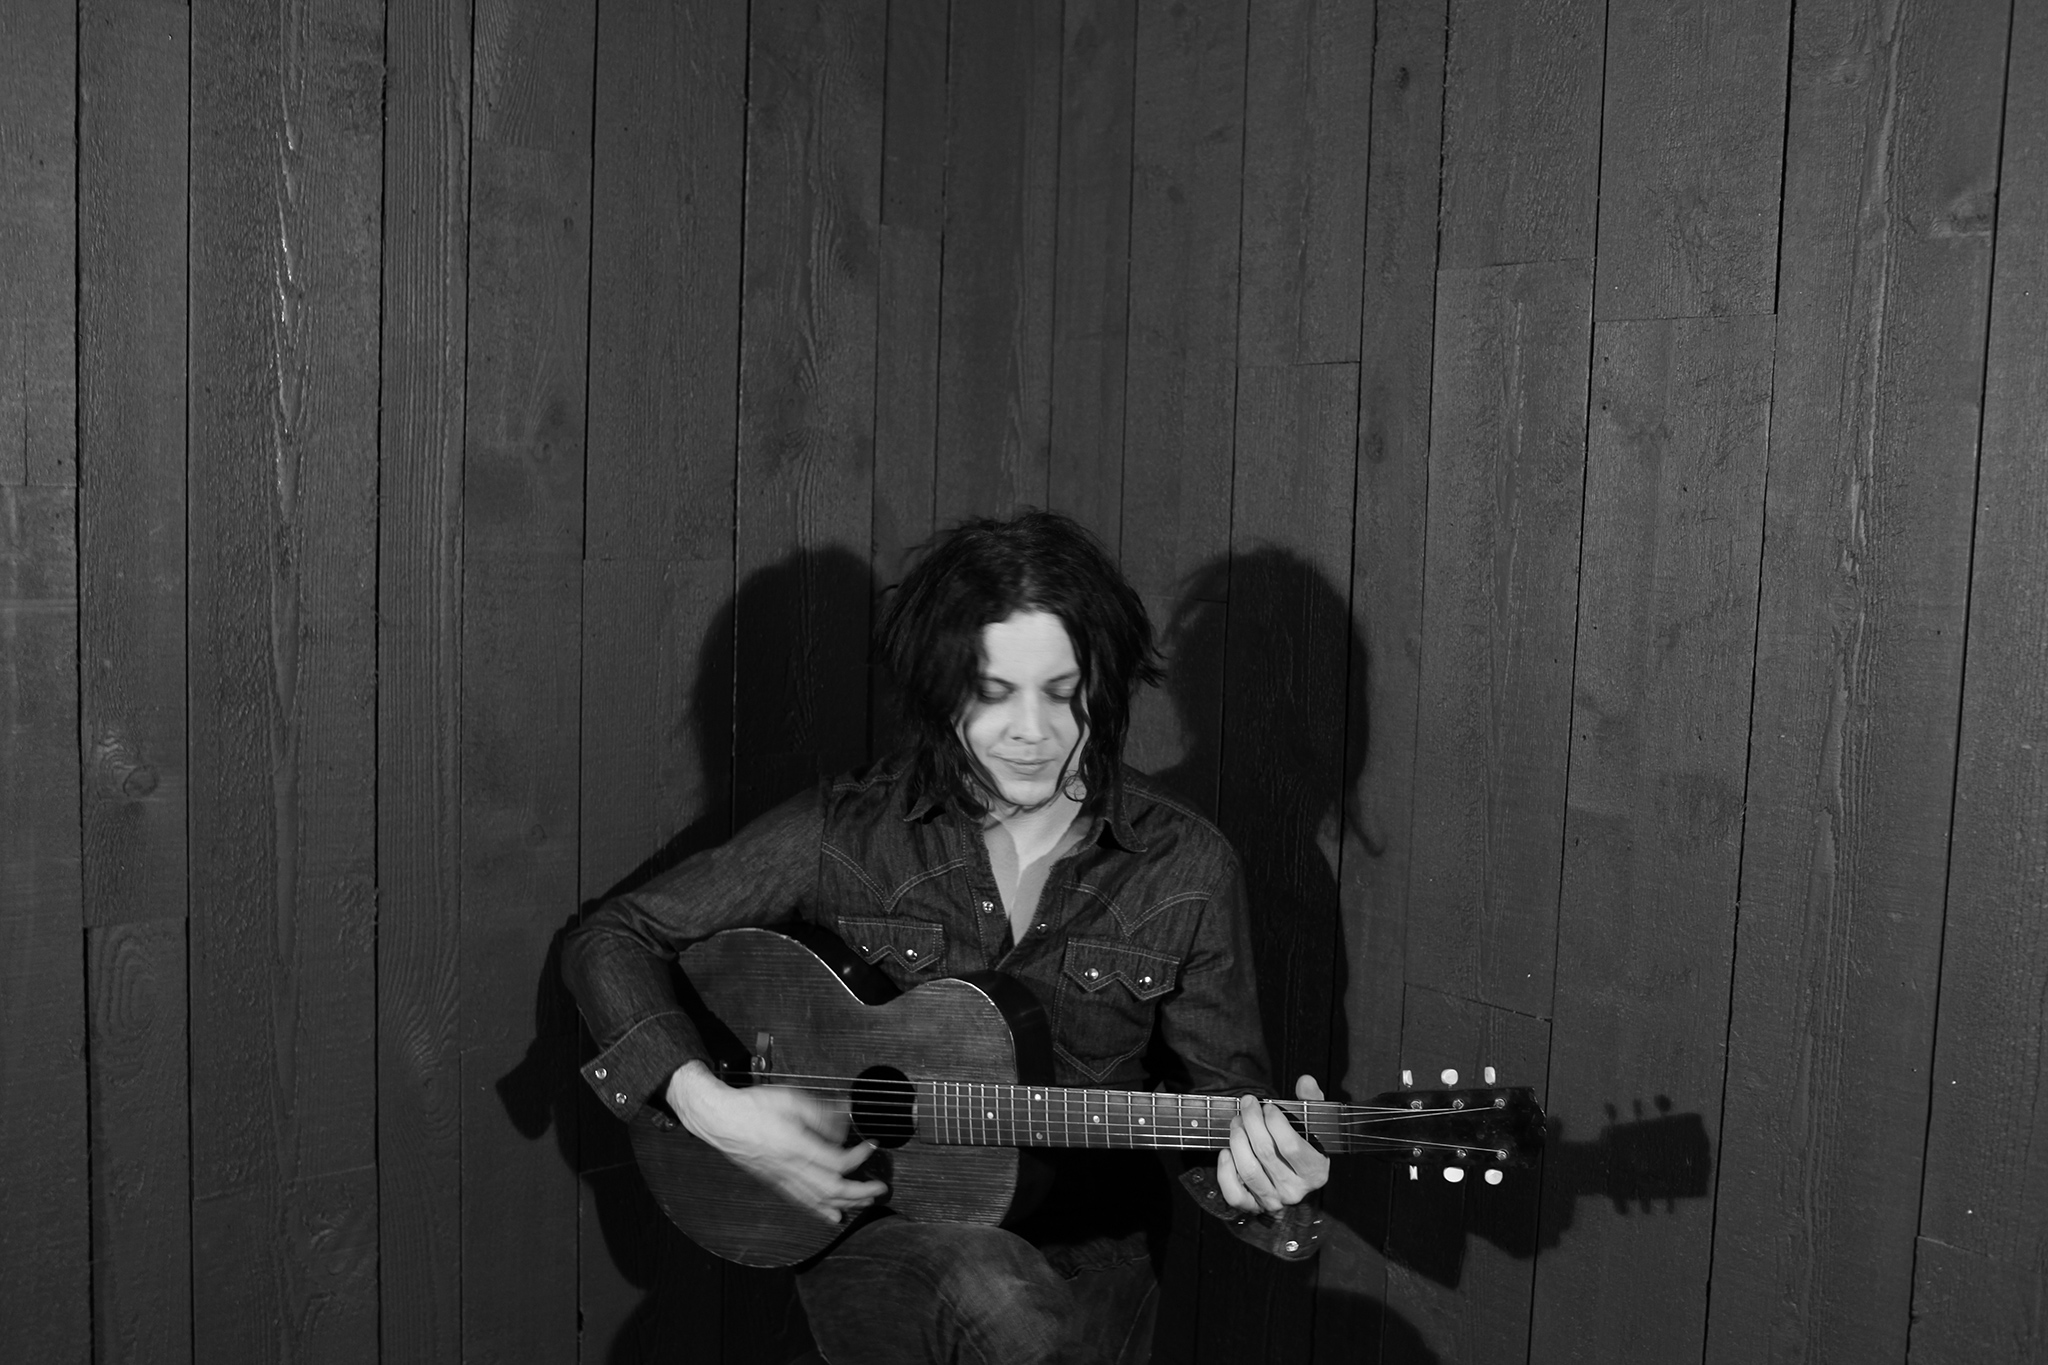 Jack White announcees 'Acoustic Recordings 1998-2016' collection